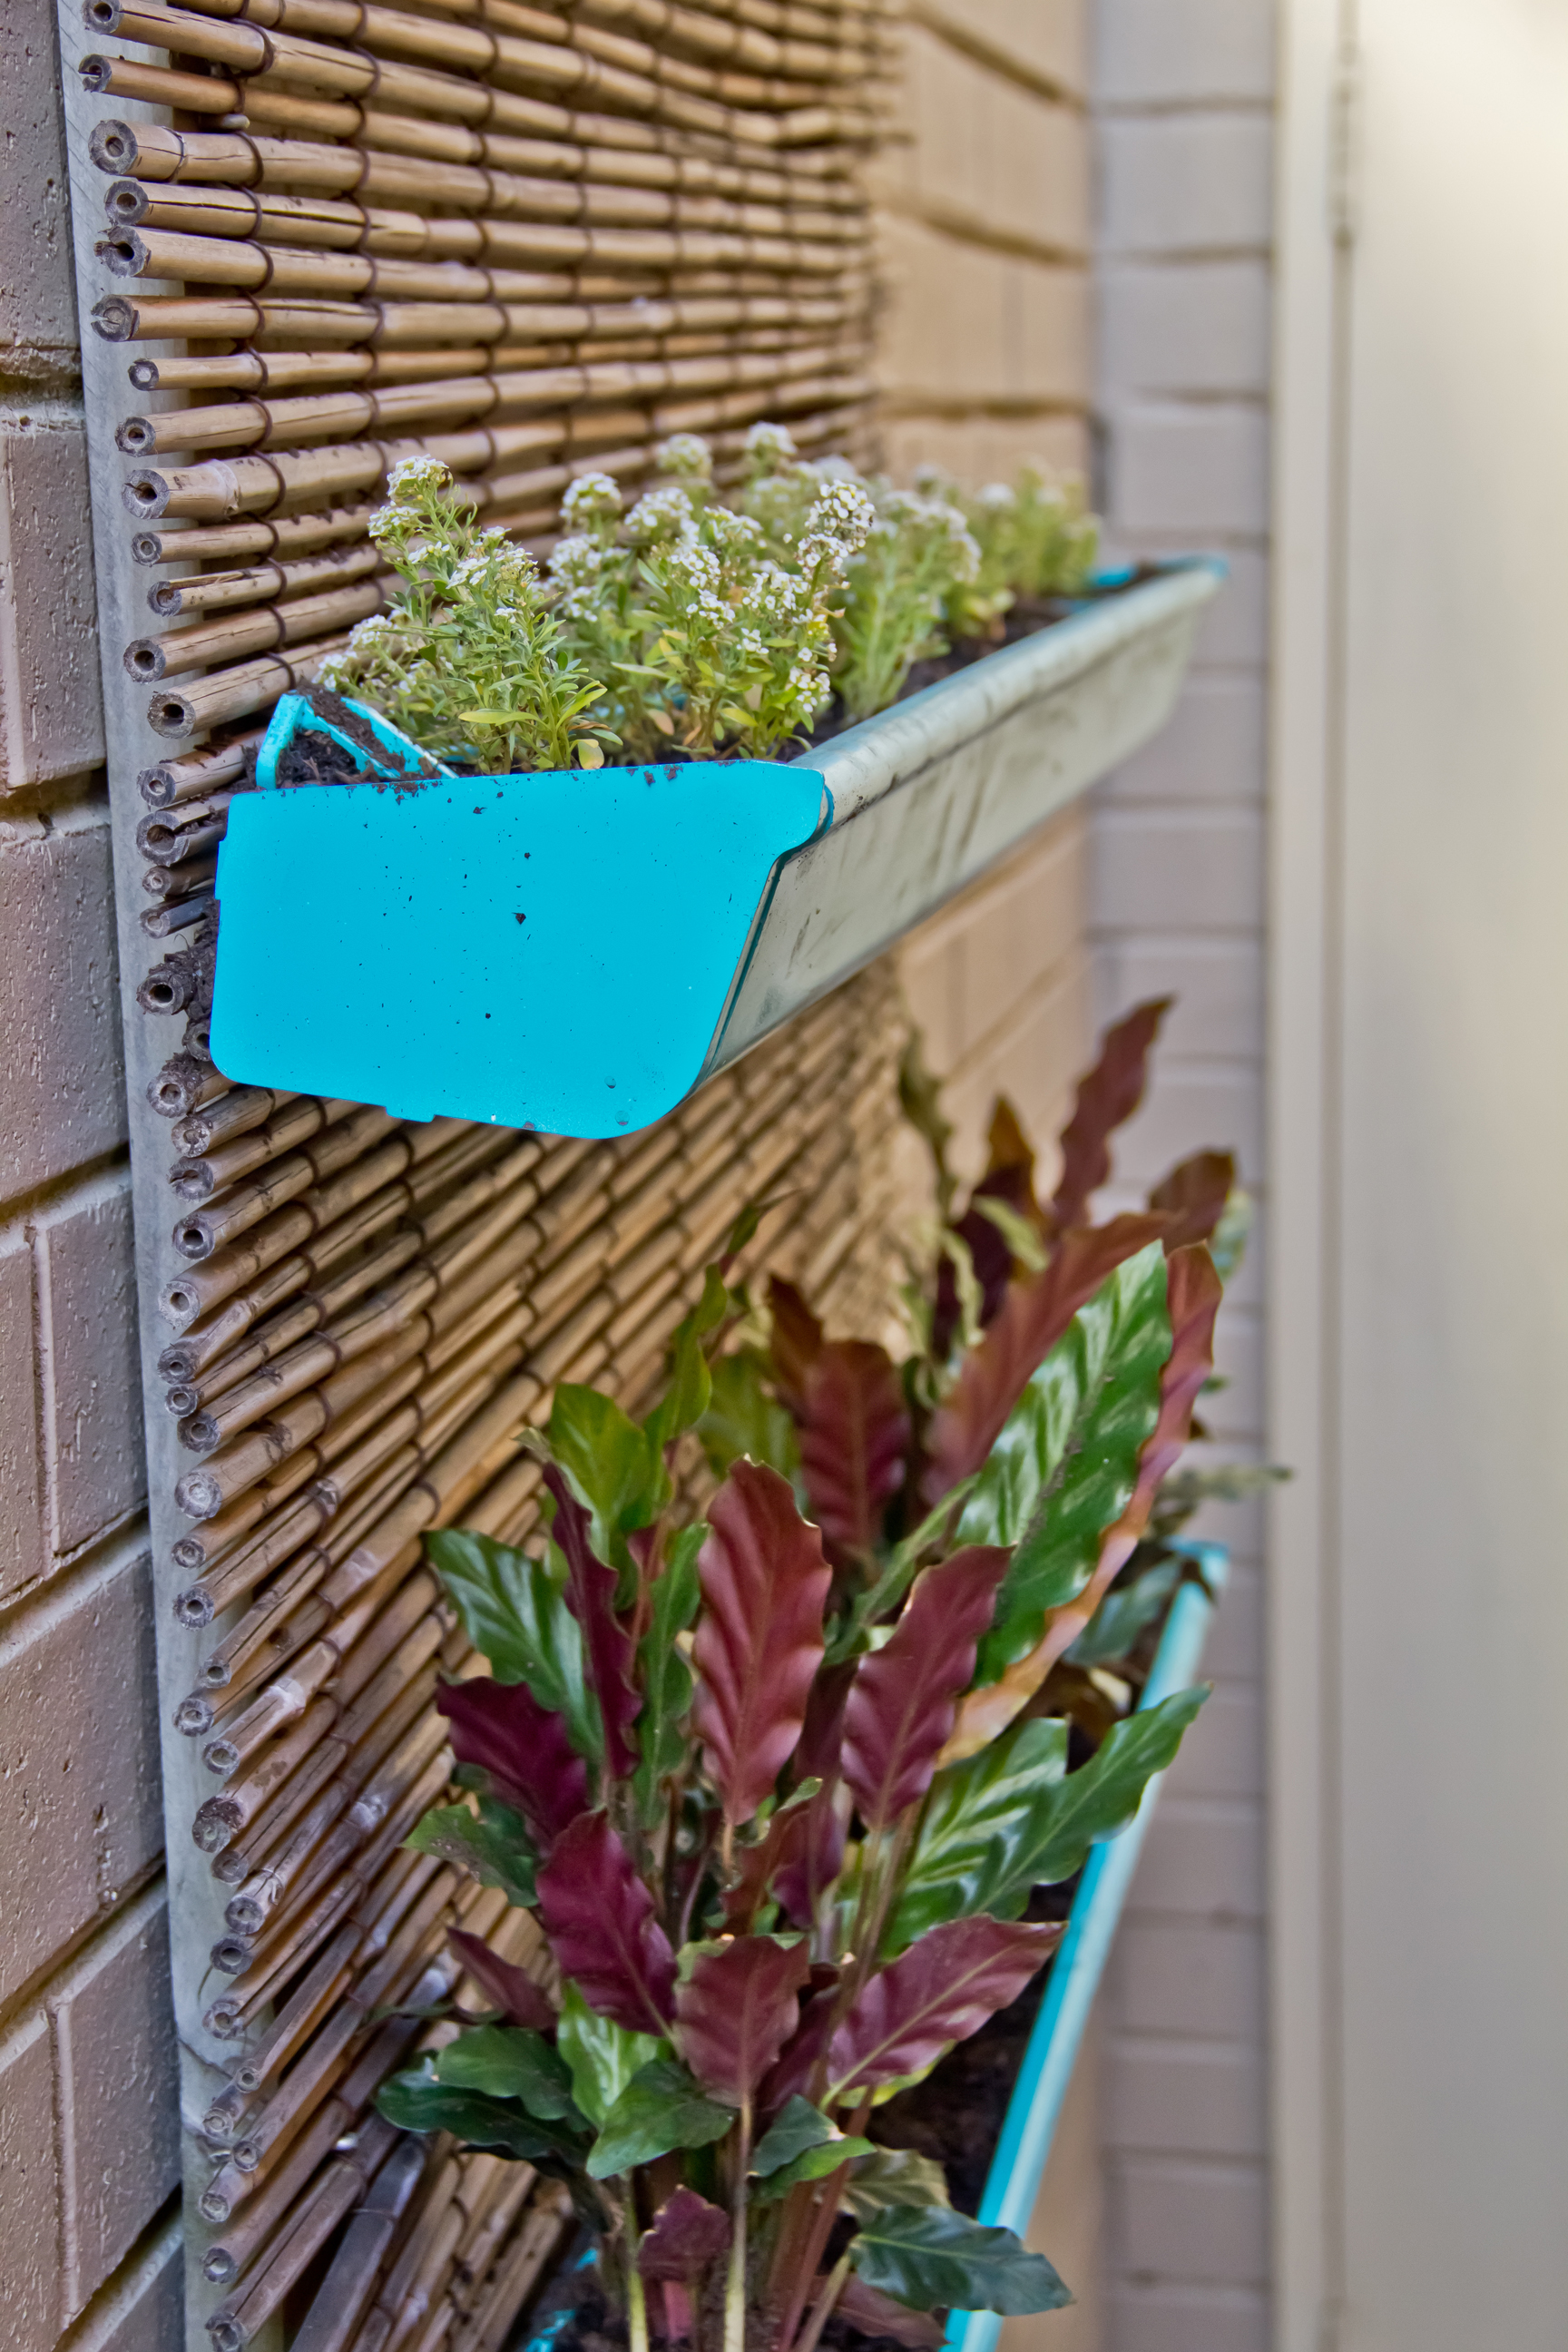 Diy vertical gardens gutters and pallets what 39 s dan up to for Vertical garden planters diy